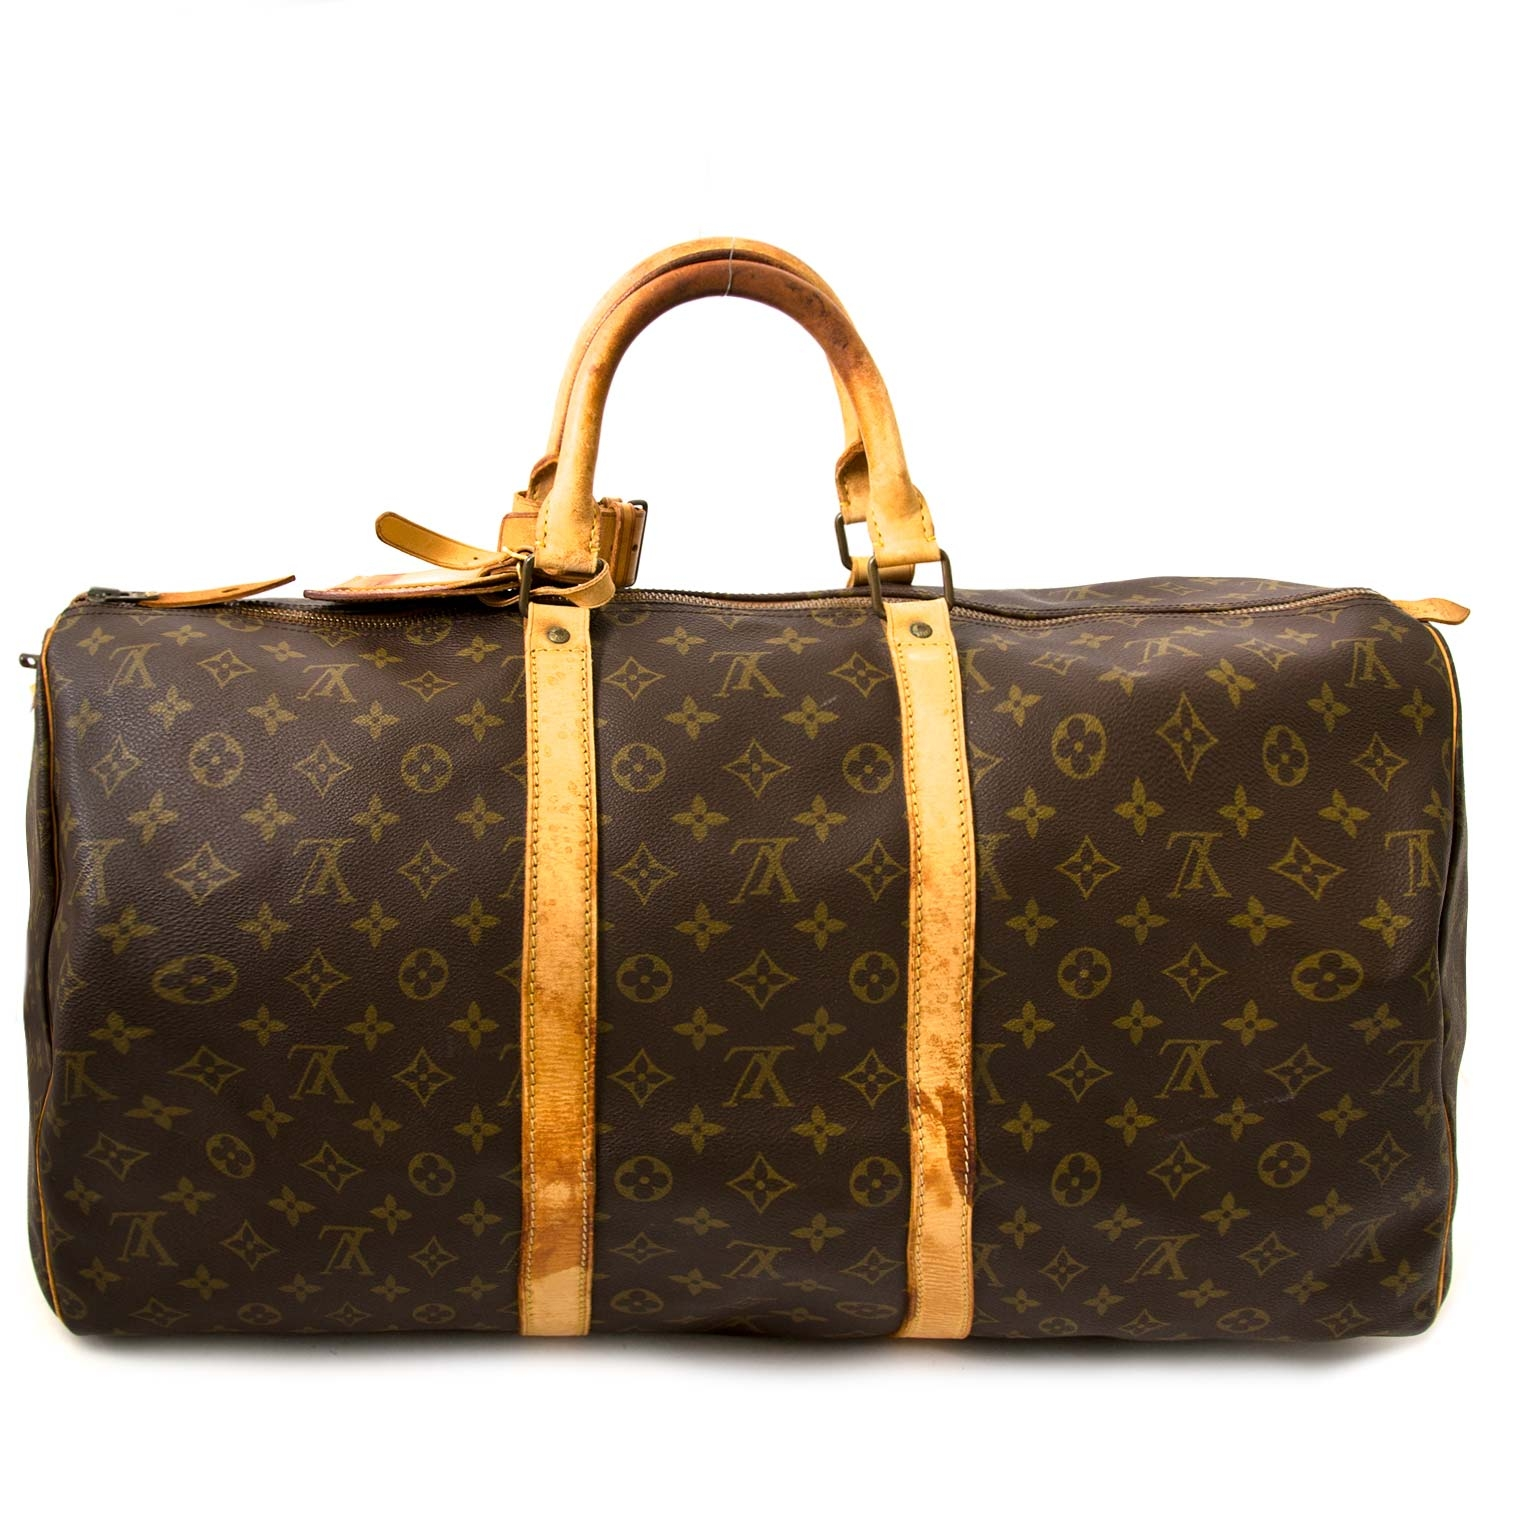 Buy and sell authentic designer Louis Vuitton Vintage Keepall 55 for the best price